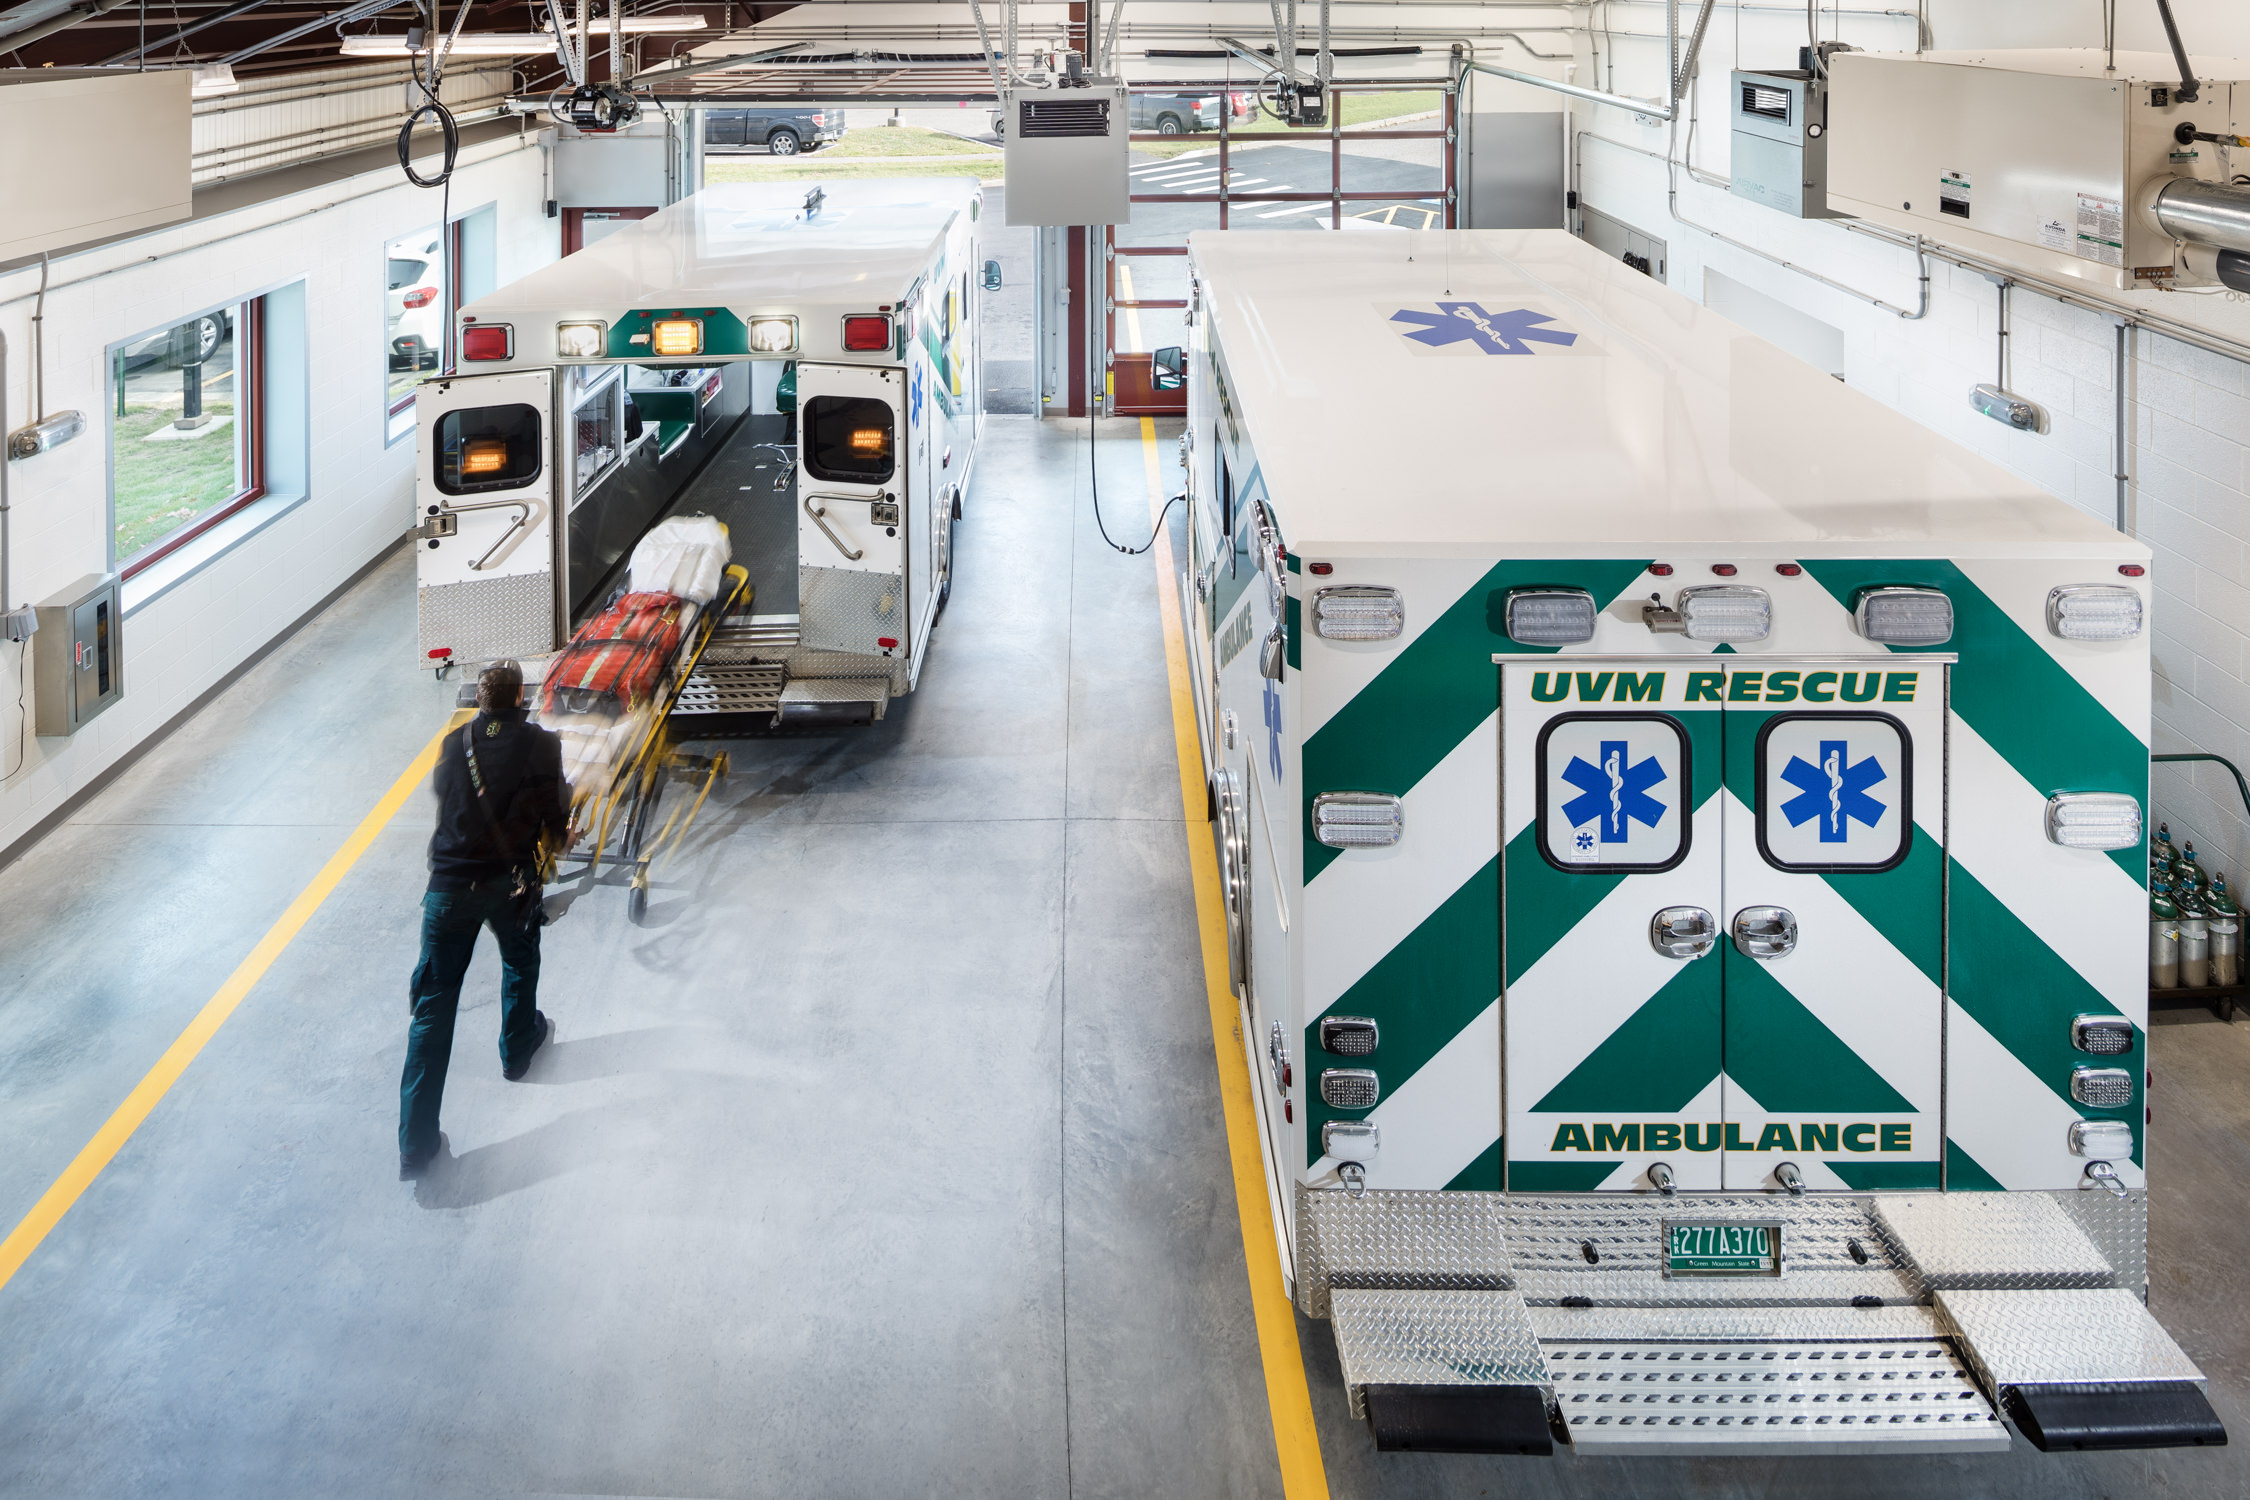 A view of an ambulance being loaded in the truck bays in the UVM Rescue building in Burlington VT by Vermont professional photographer Stina Booth